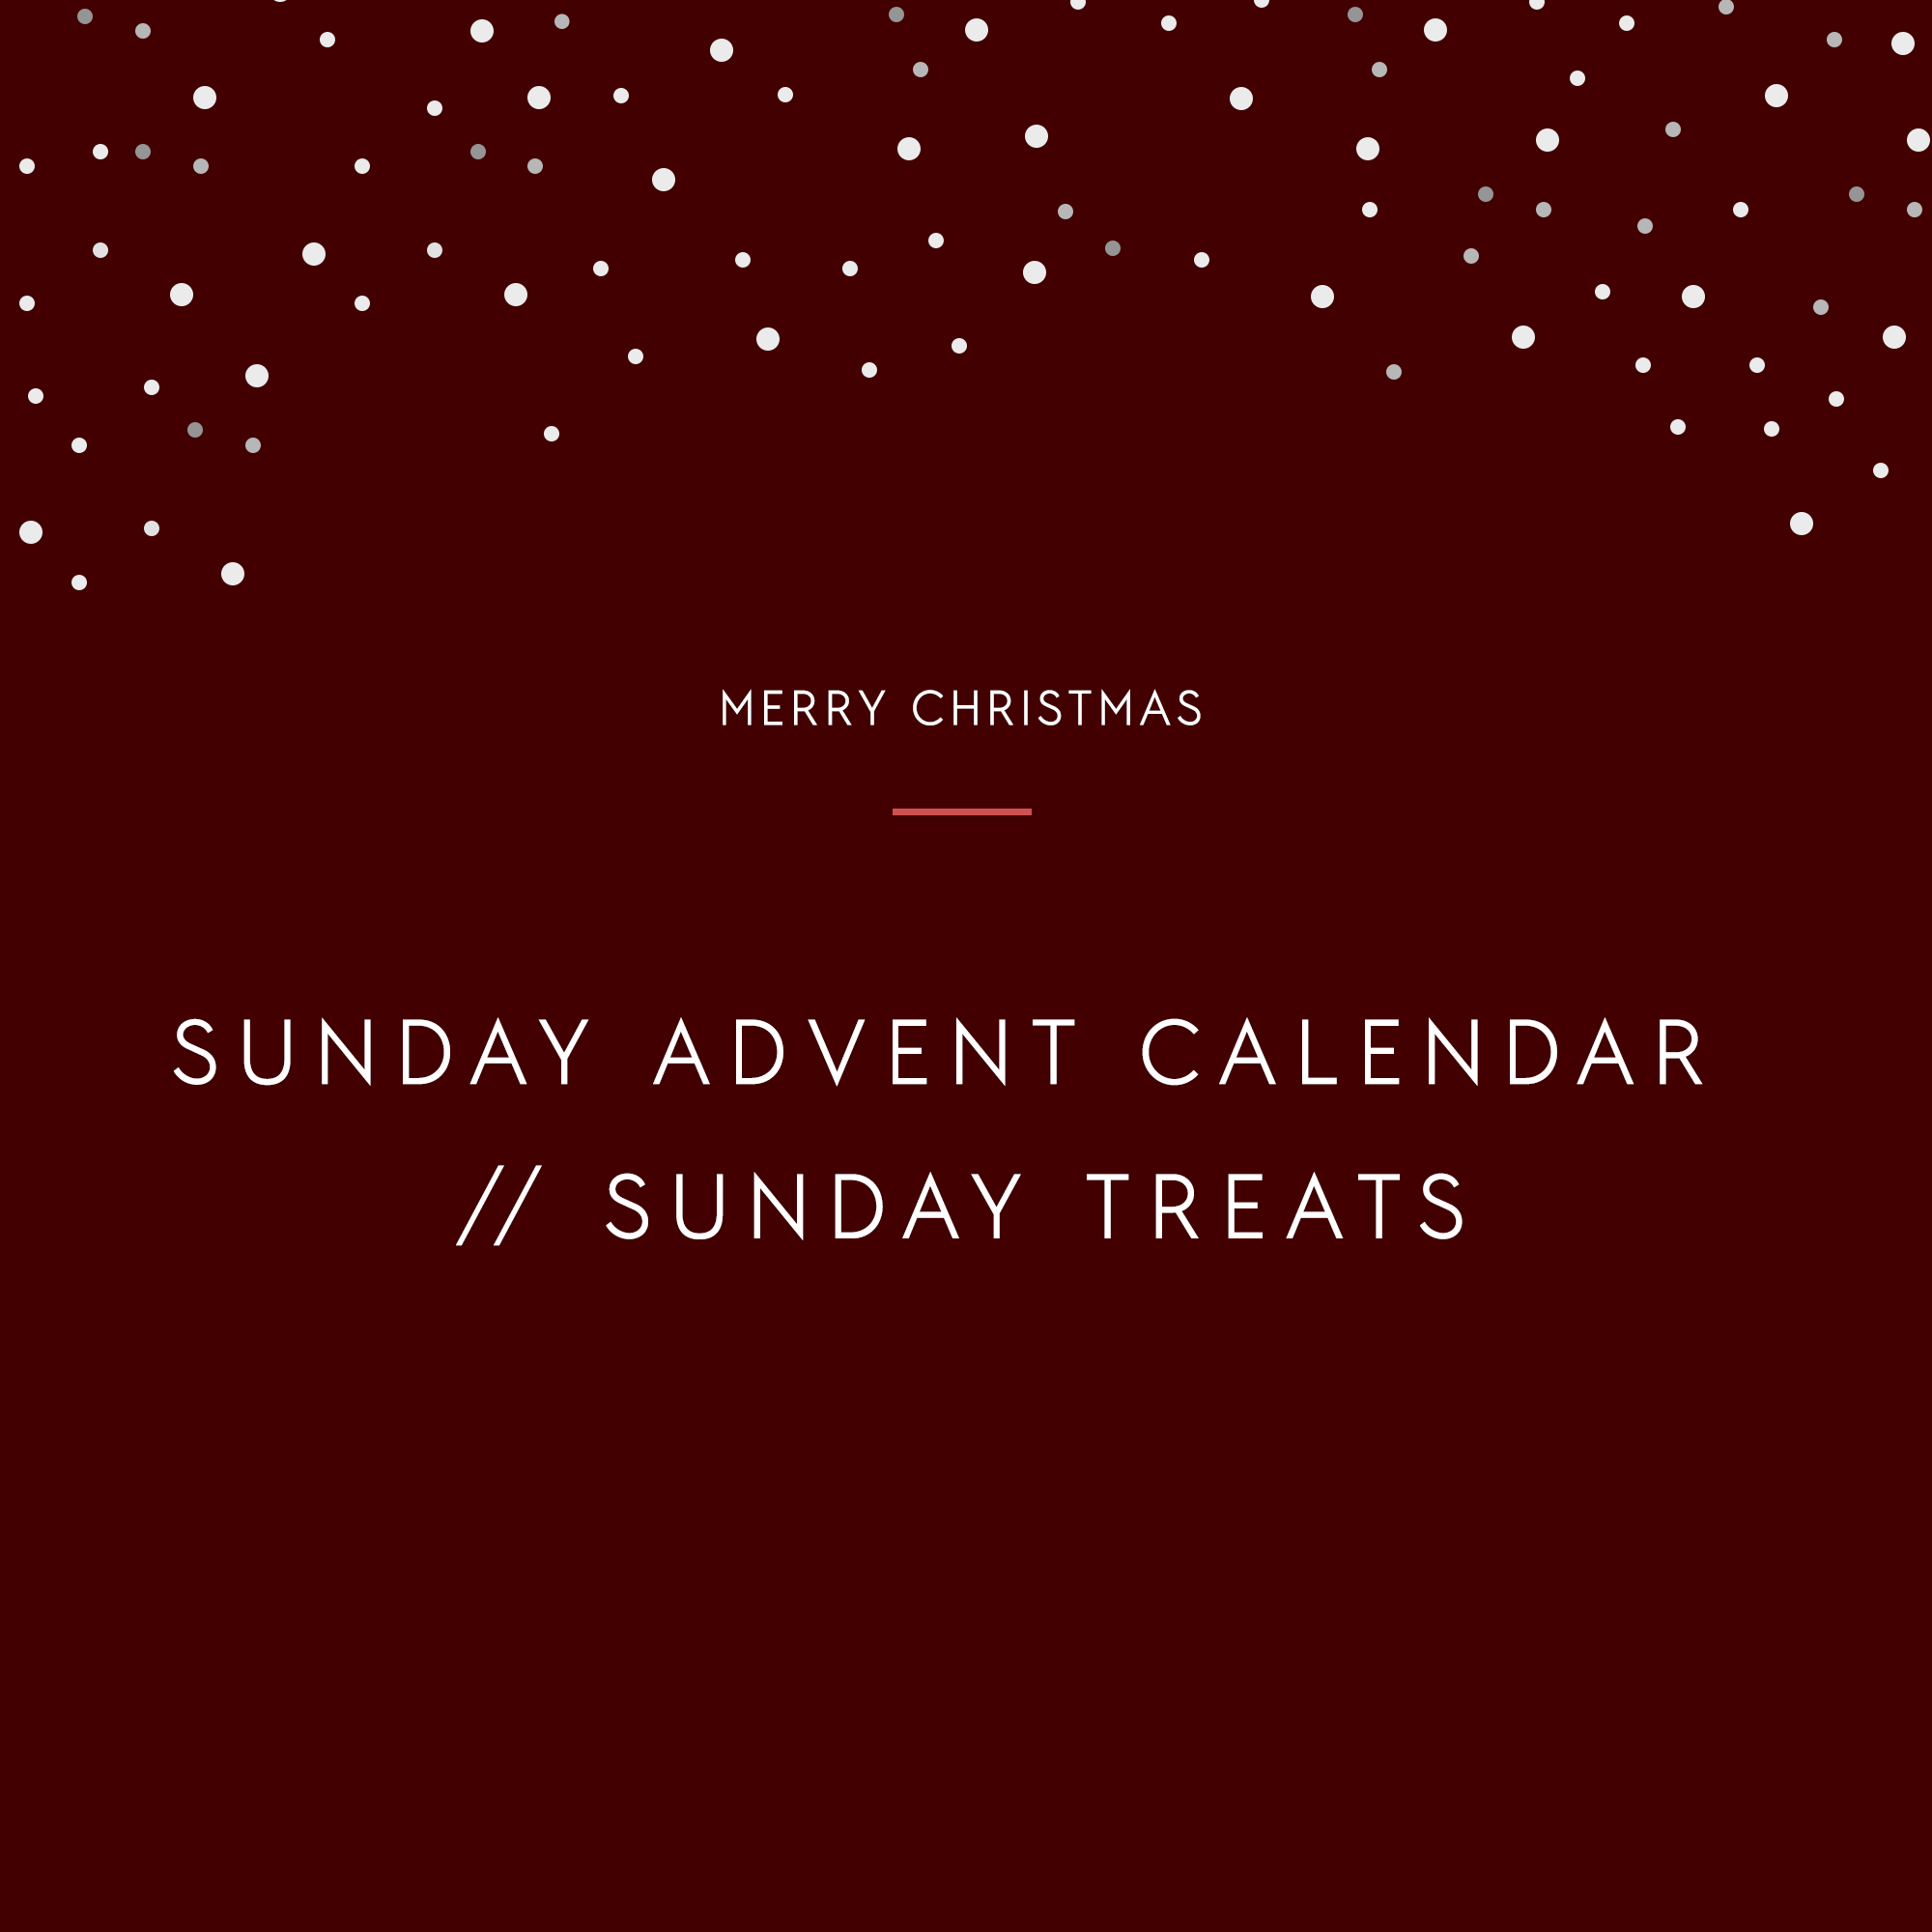 SUNDAY ADVENT CALENDAR 2019 // SUNDAY TREATS